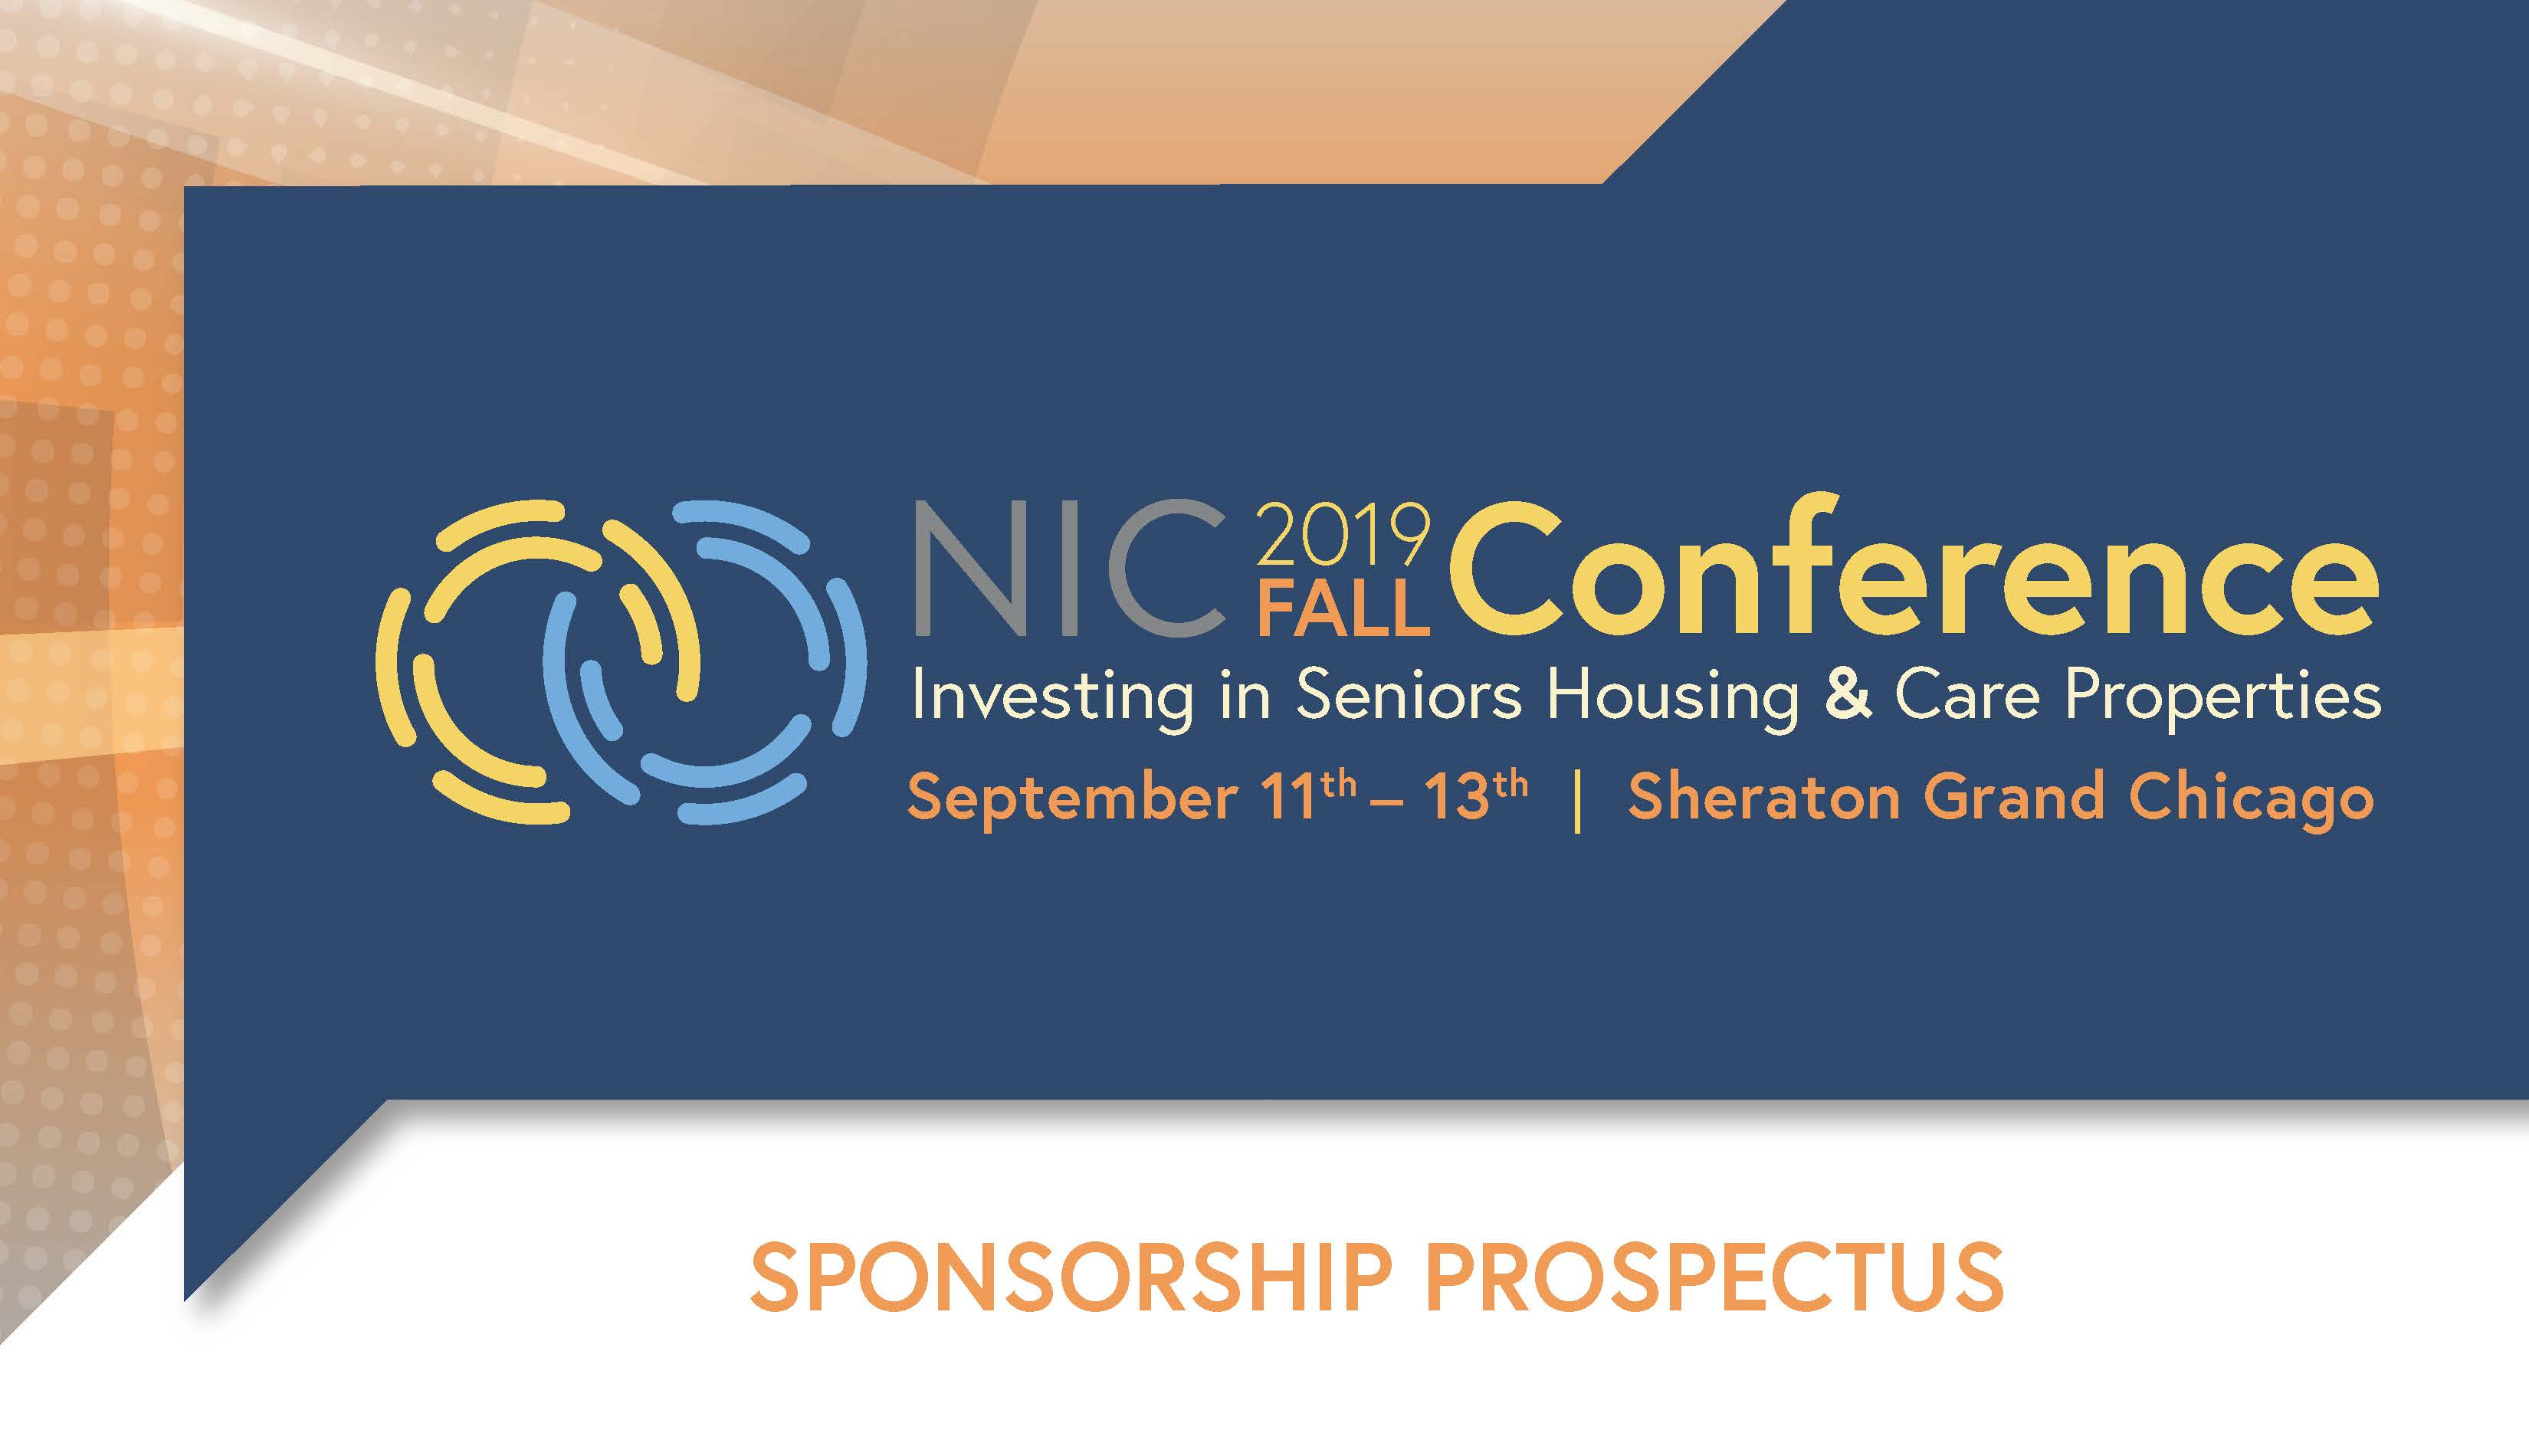 2017 Fall Conference Sponsorship Prospectus Cover